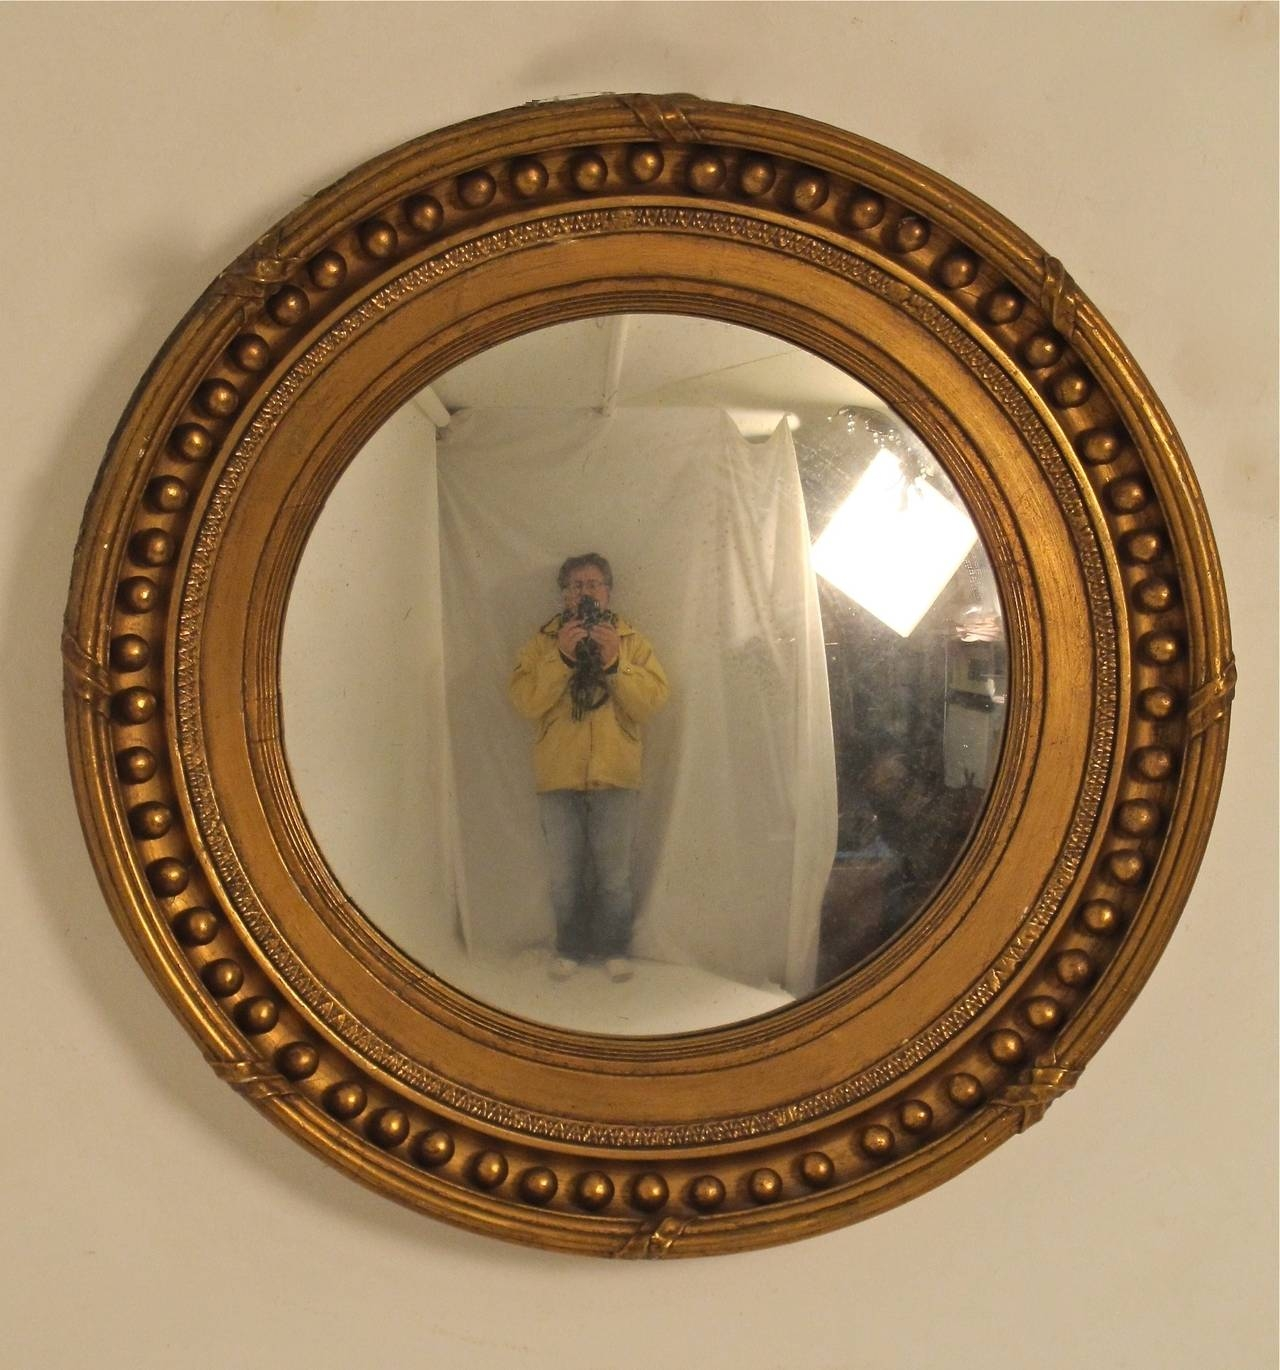 19th Century Regency Style Convex Mirror At 1stdibs For Decorative Convex Mirrors For Sale (View 7 of 15)